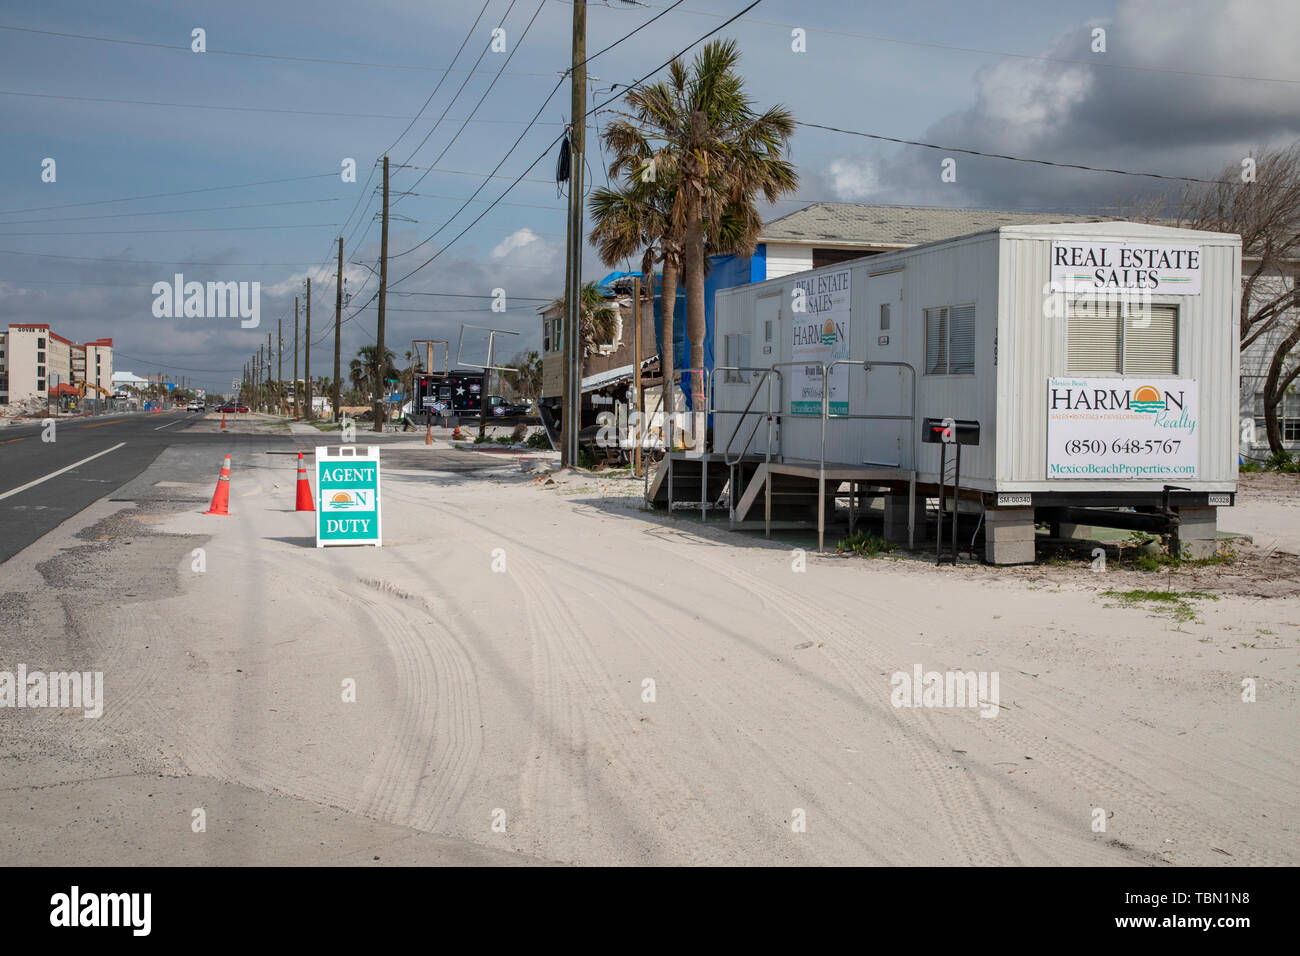 Mexico Beach, Florida - Destruction from Hurricane Michael is widespread seven months after the Category 5 storm hit the Florida Panhandle. A real est - Stock Image